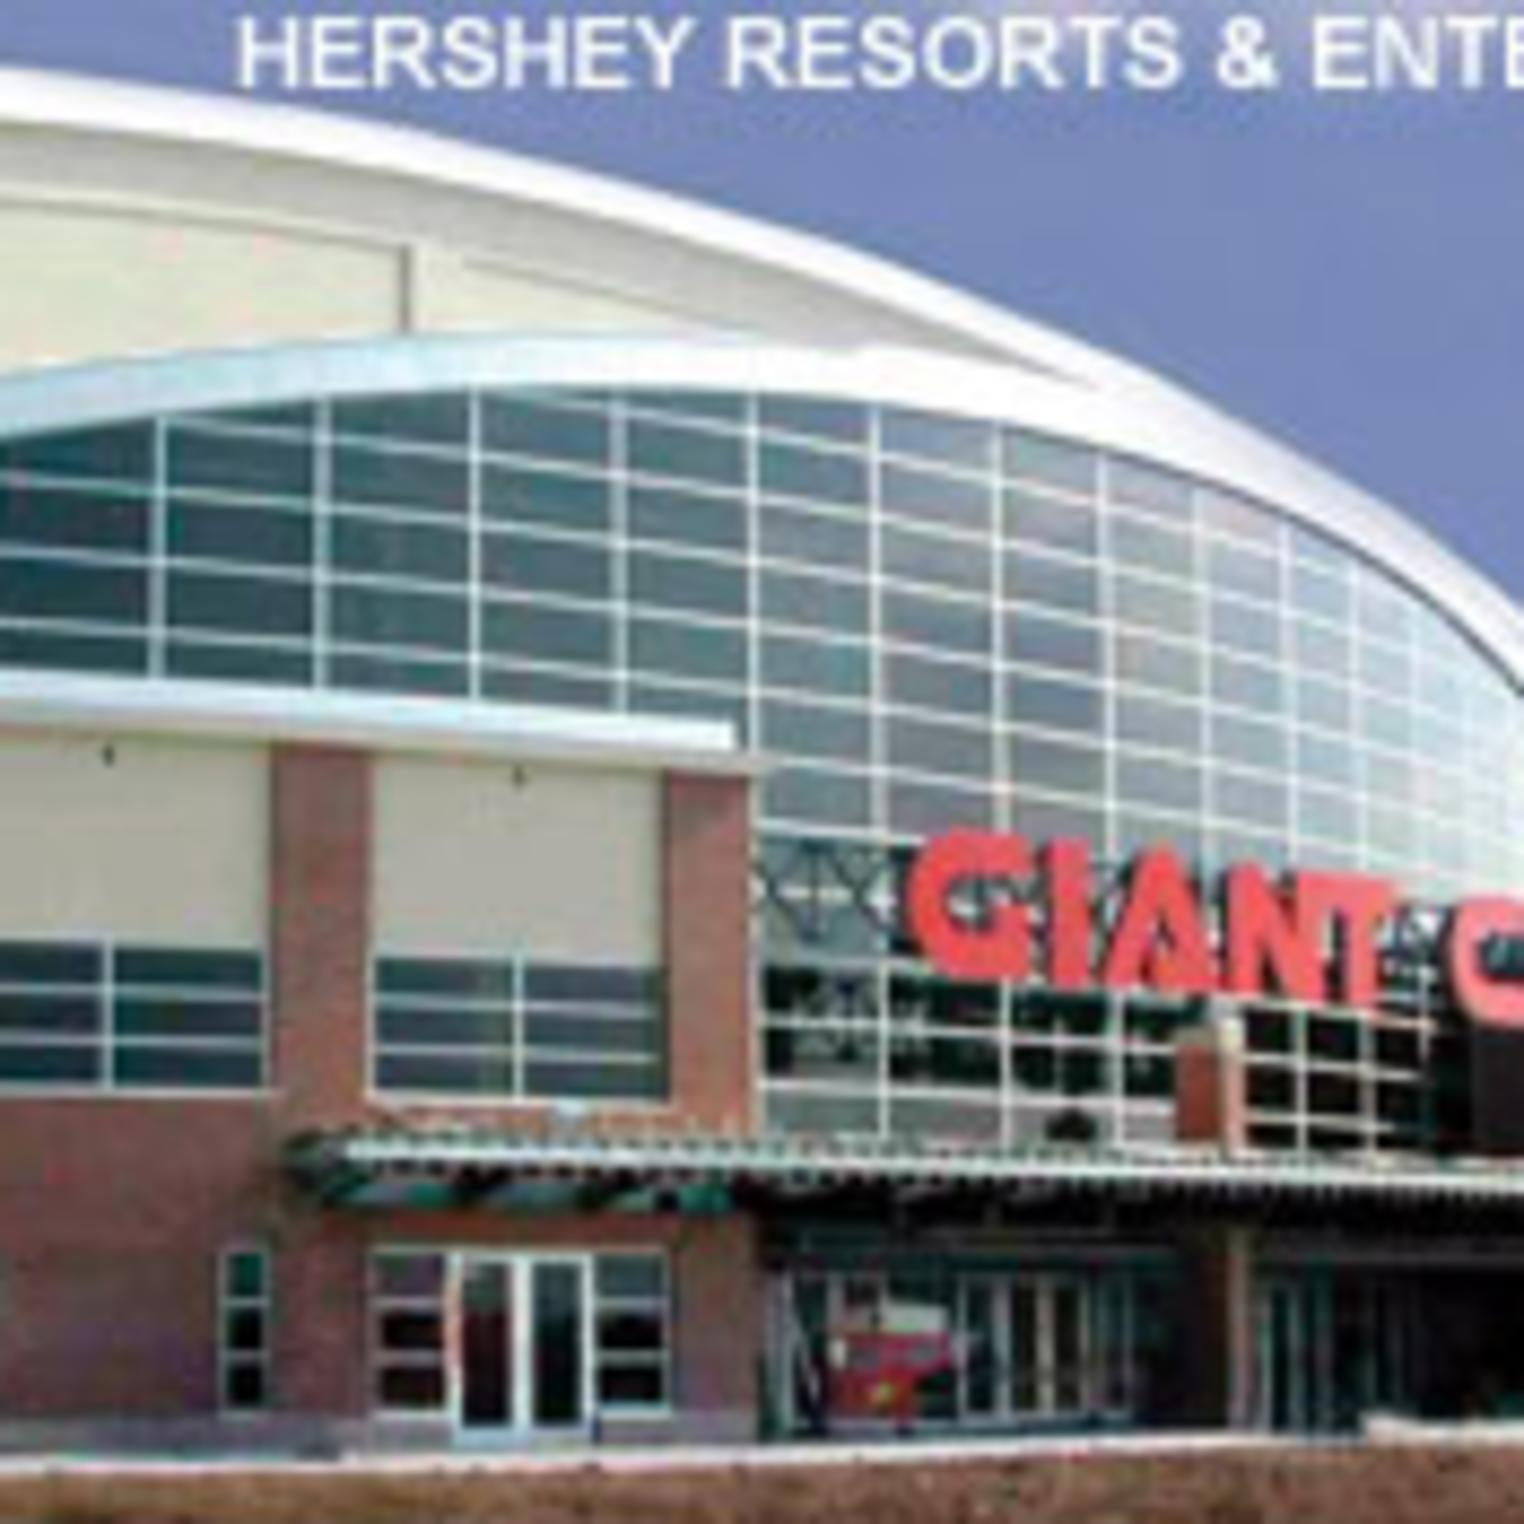 The Giant Center